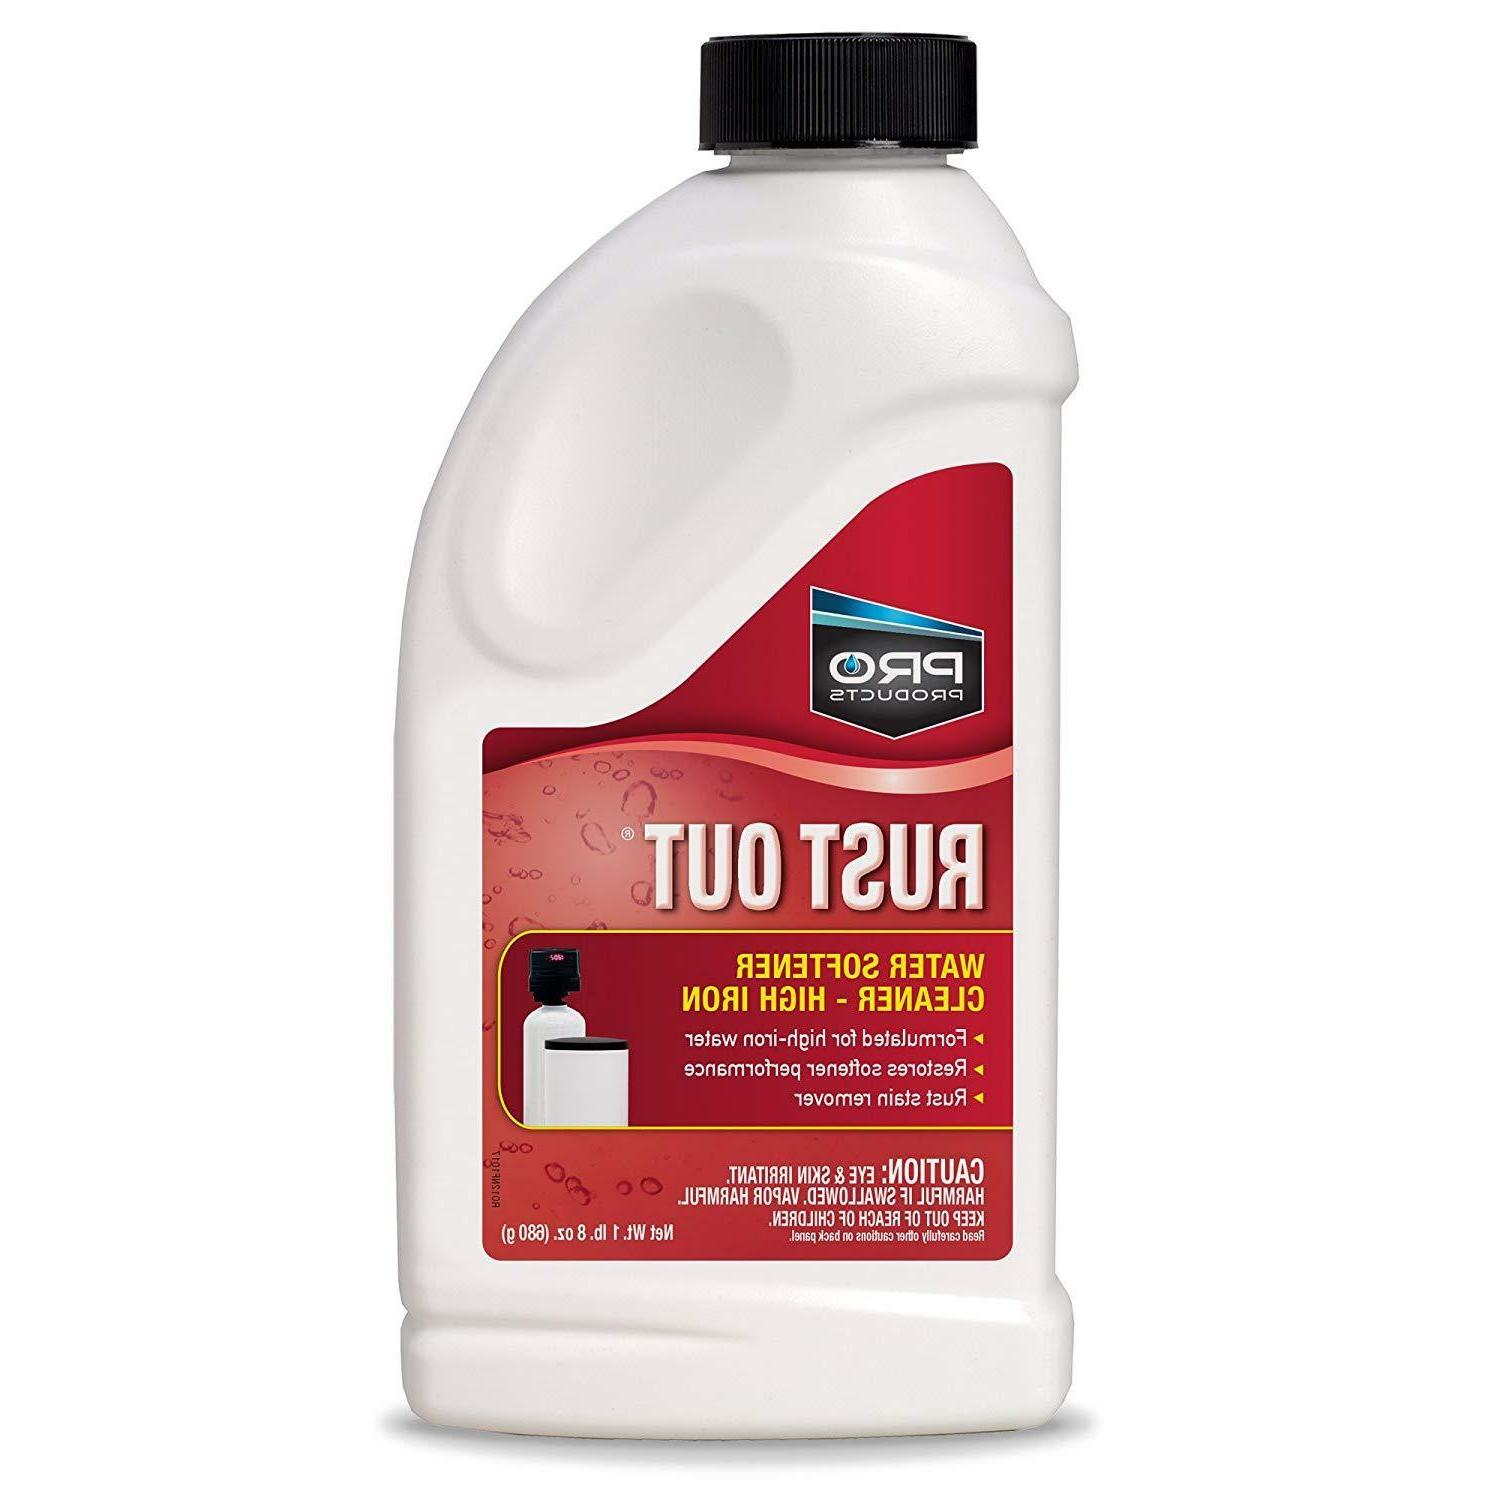 Pro Products Out Water Softener Cleaner Iron Rust Stain 1.5 lb